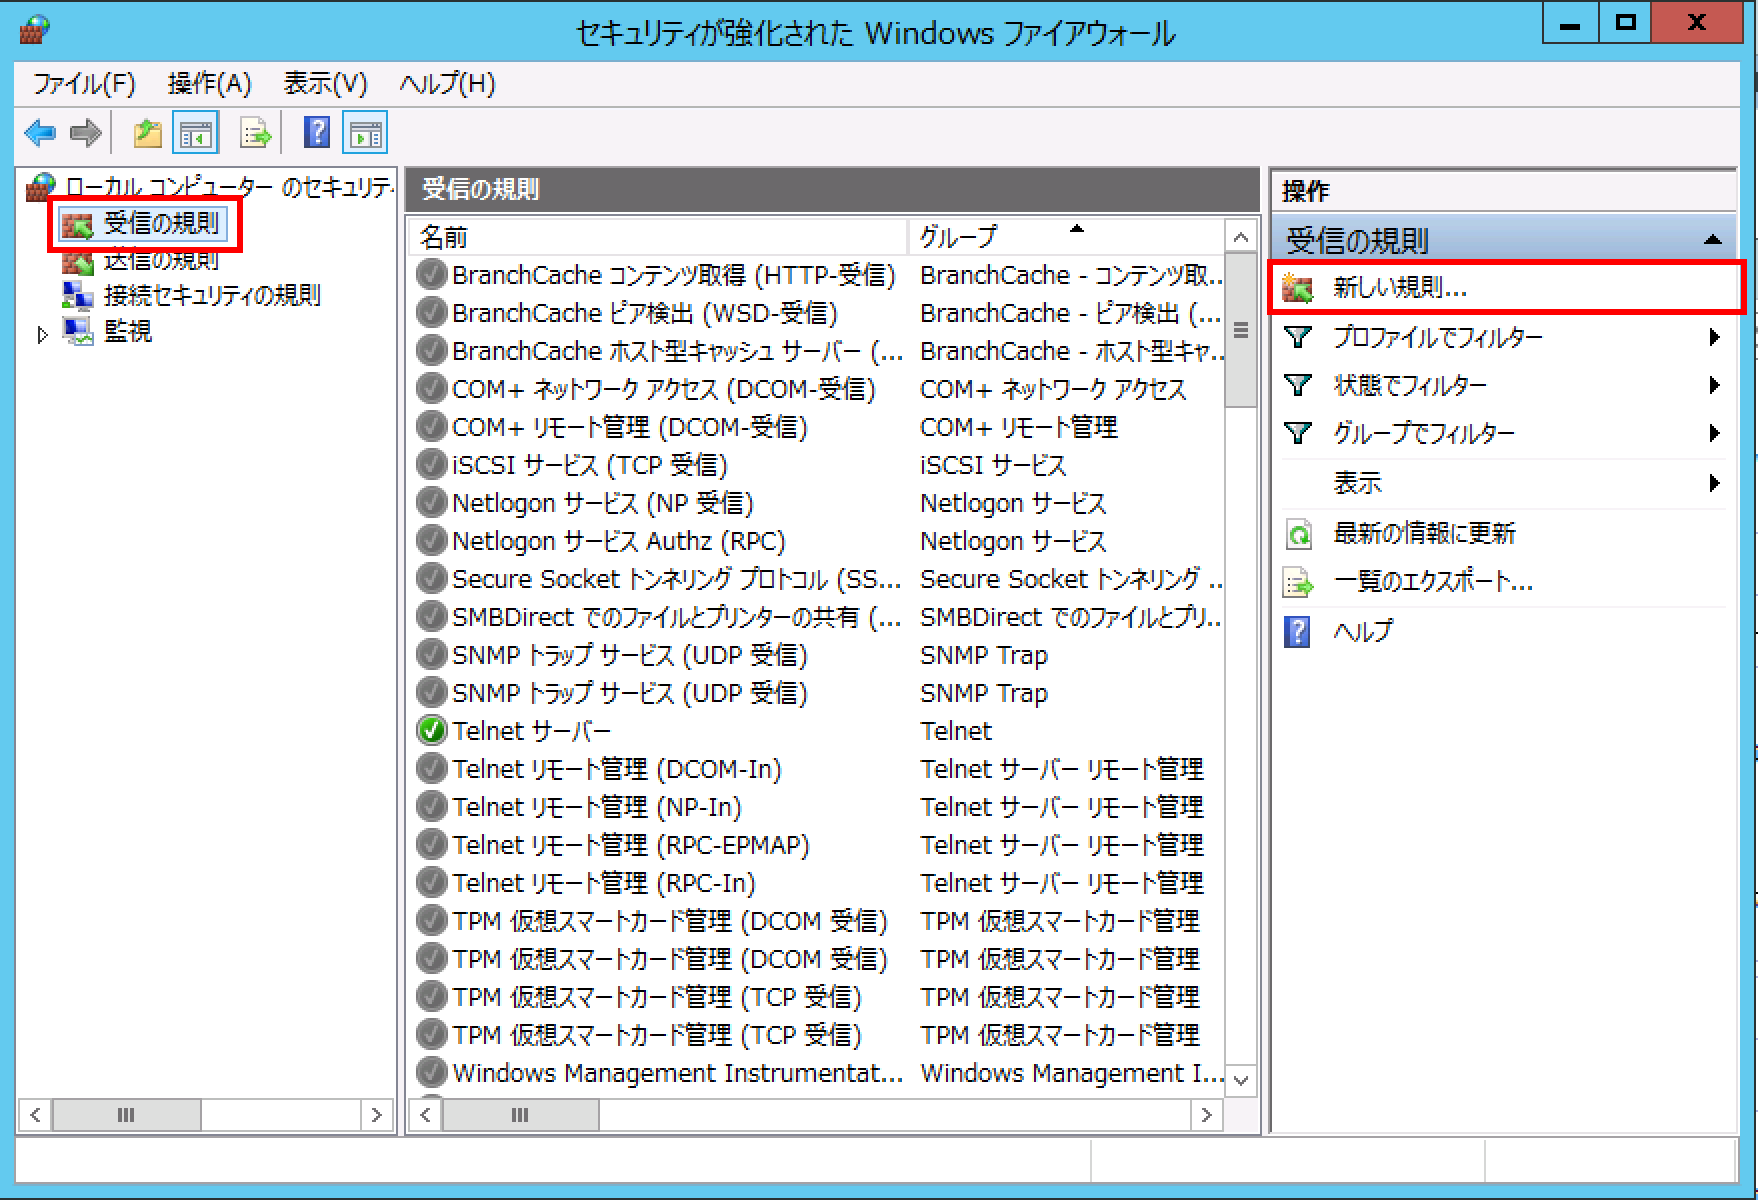 WindowsFirewall_AddNewRule